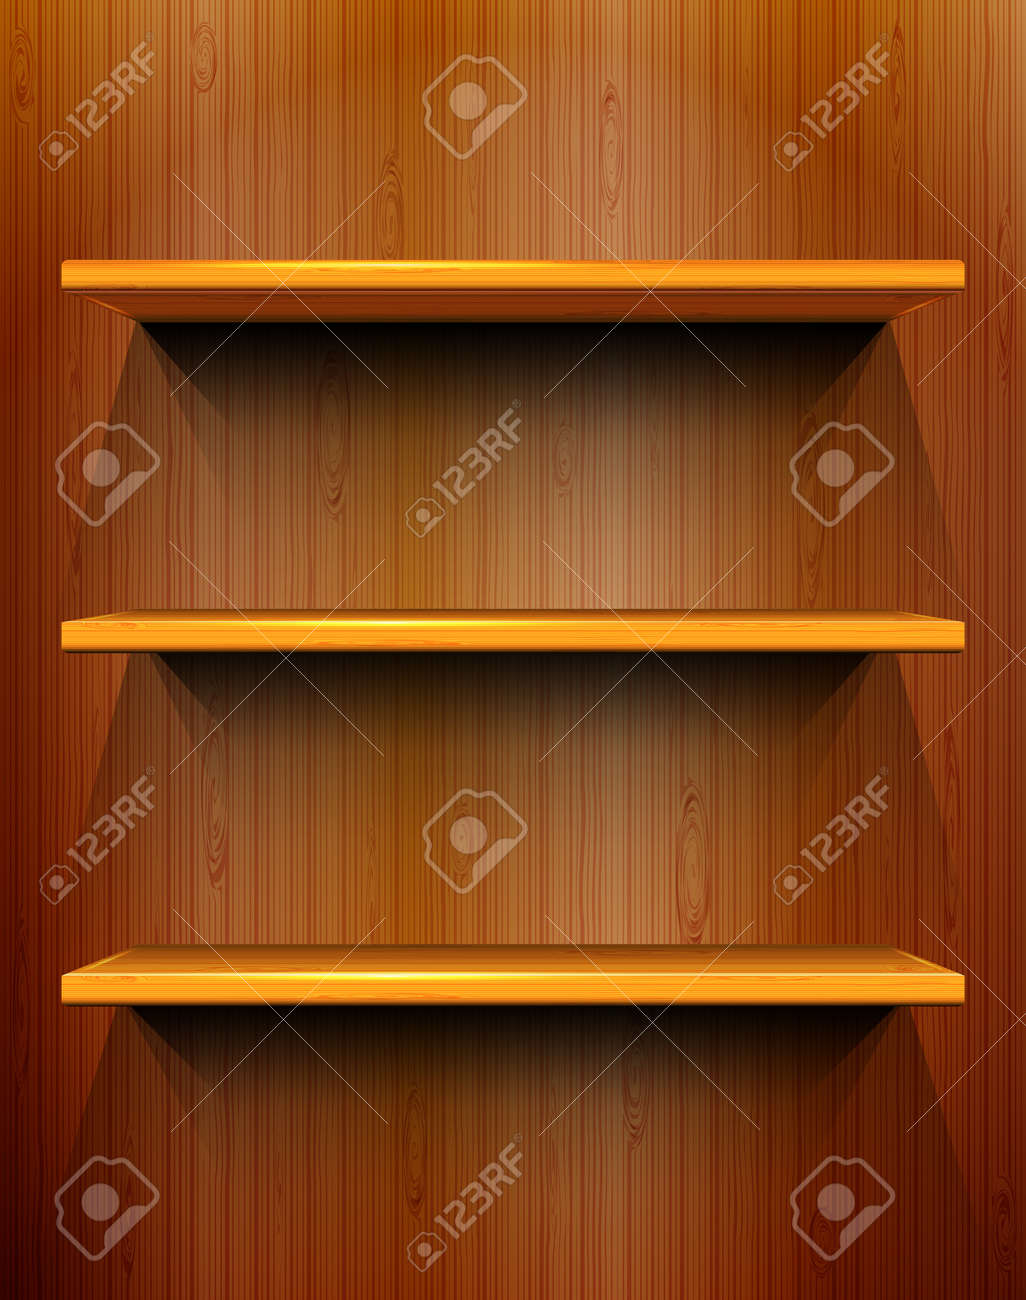 Interior wooden shelves free vector - Vector Wooden Shelves With Place For Your Exhibits Seamless Wooden Background